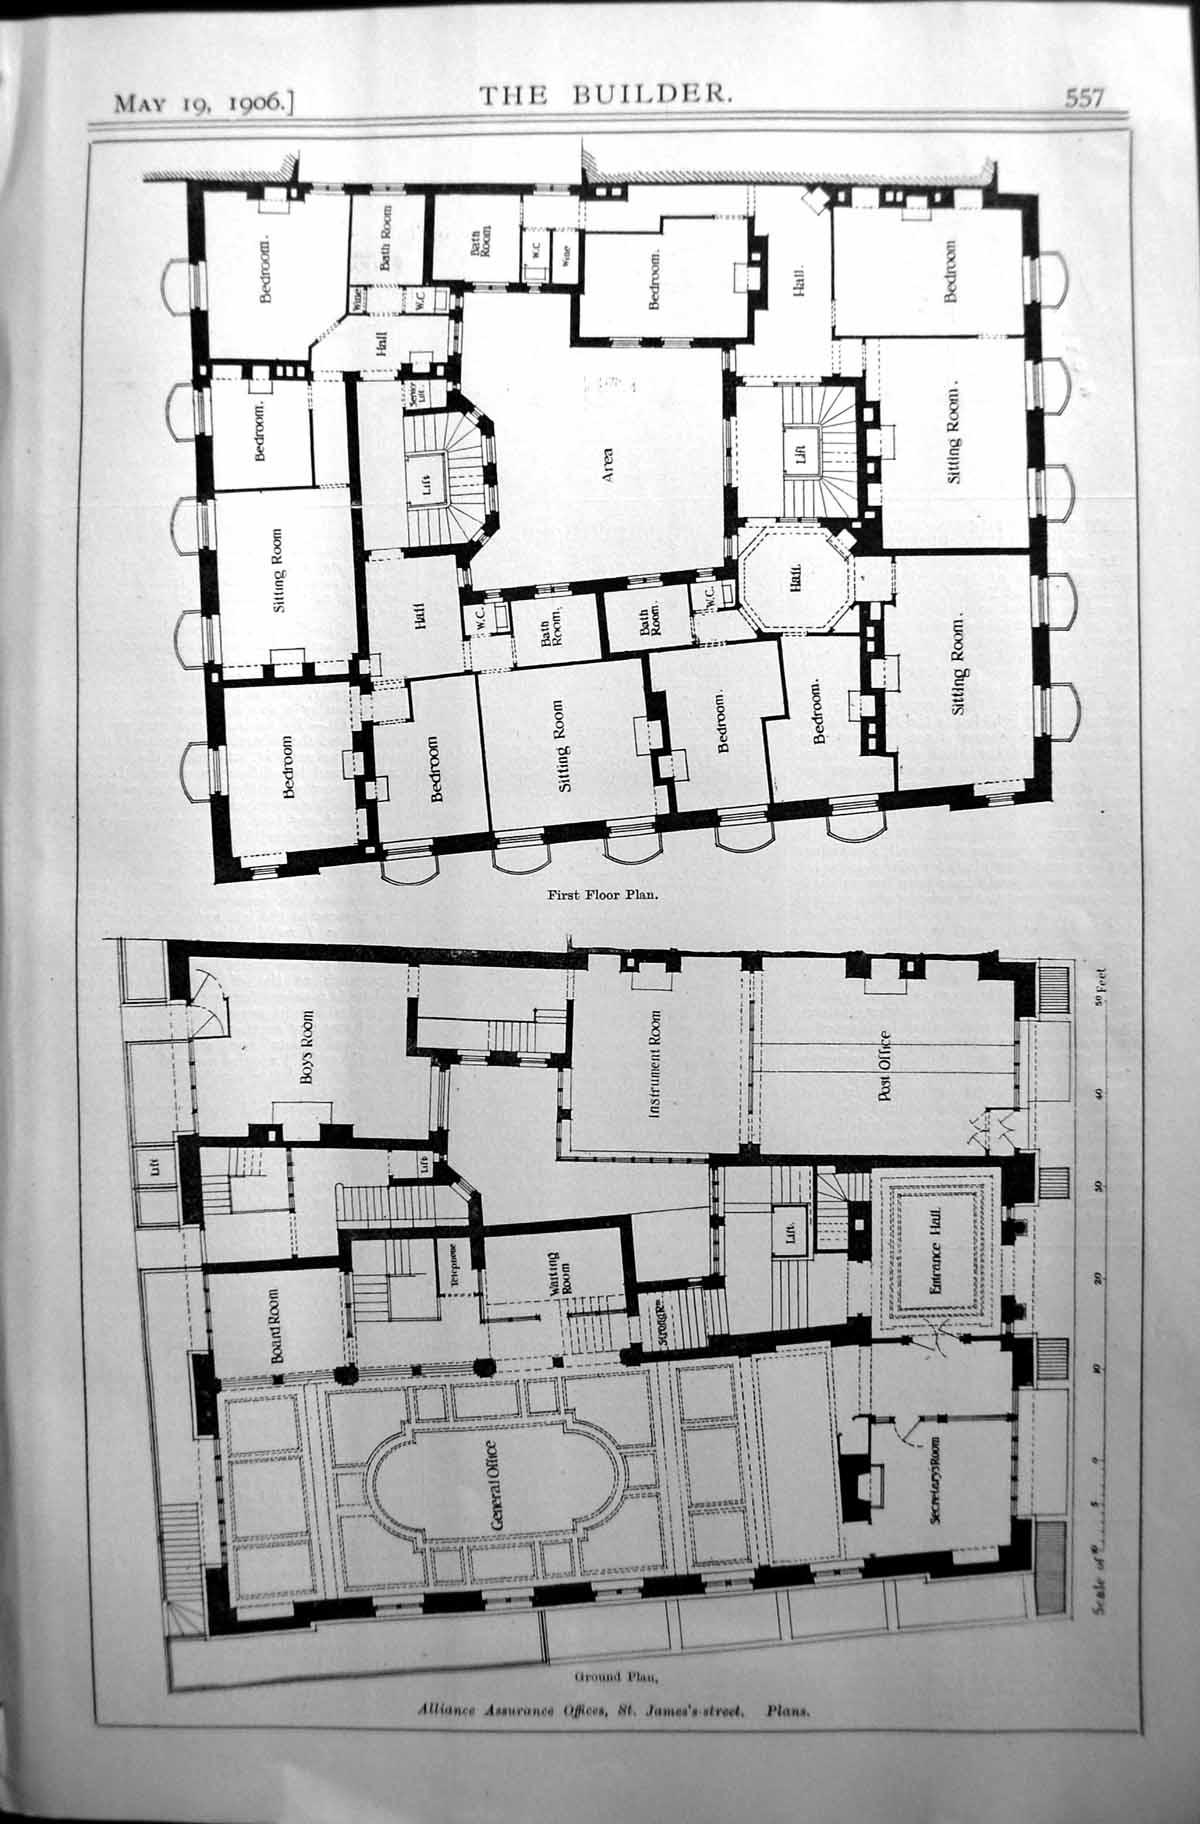 Old-Architecture-1906-Builder-Ground-Plan-Alliance-Assurance-Offices-20th